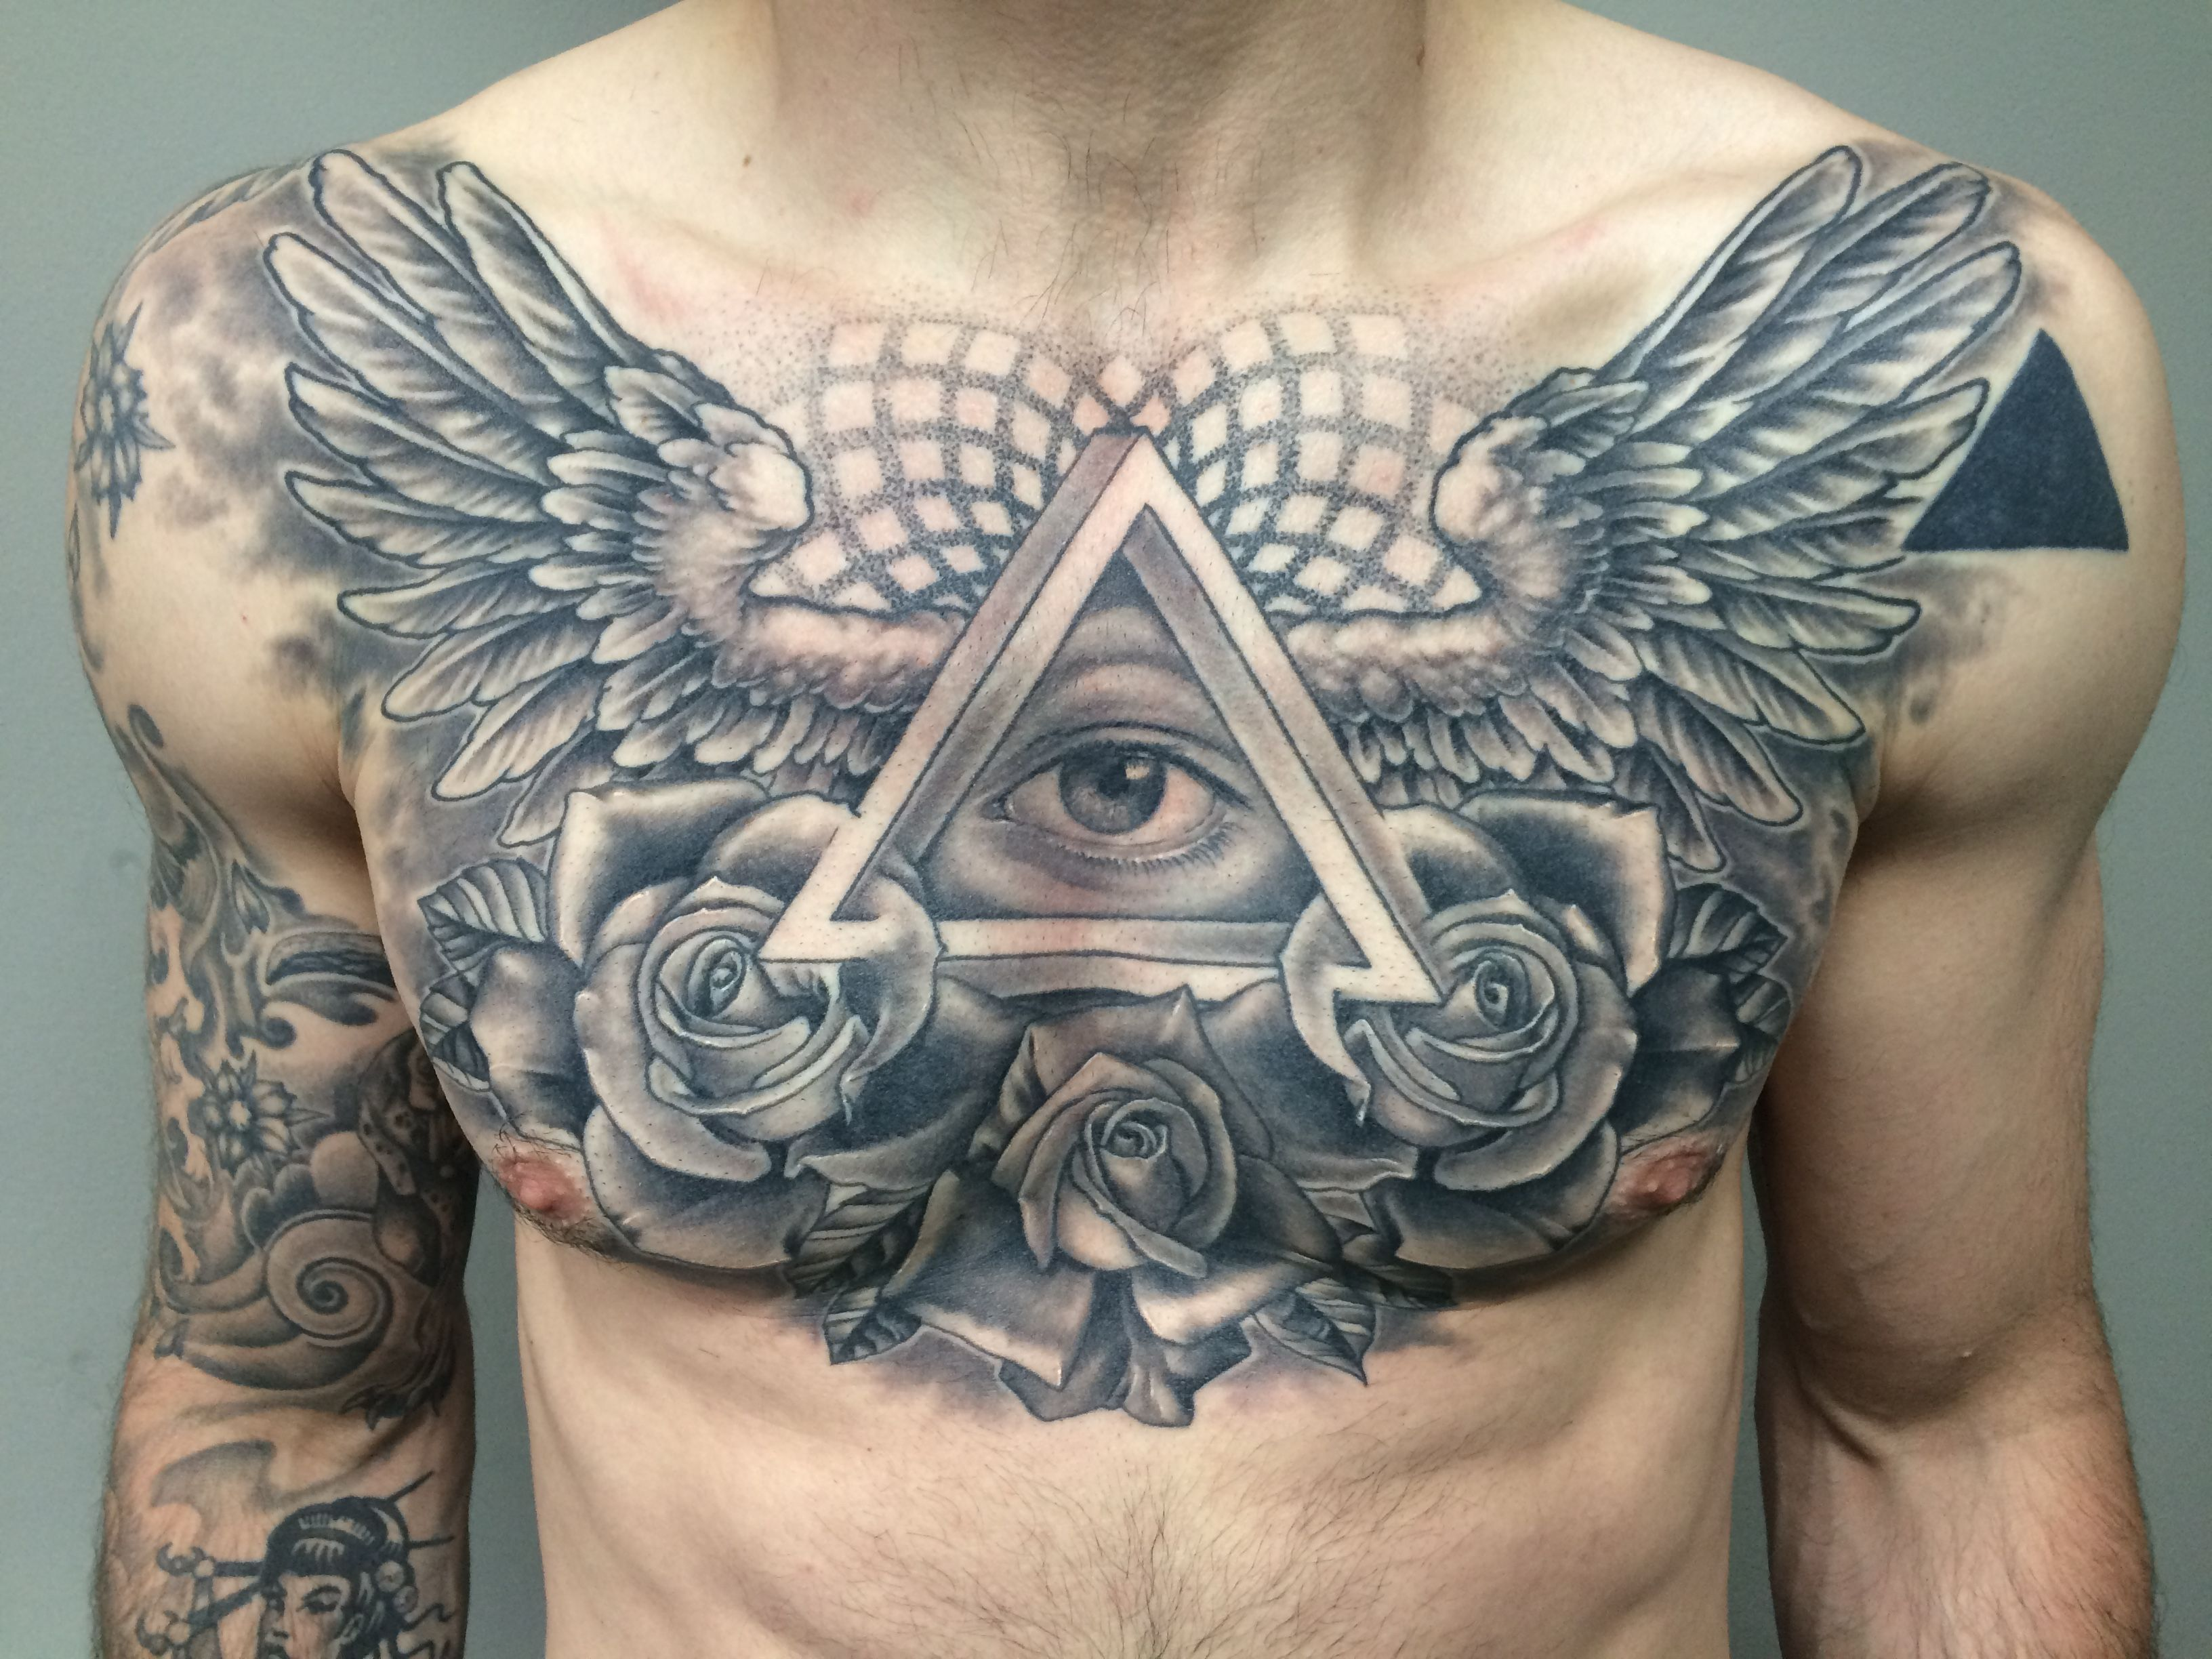 Tattoo Ideas Chest: Awesome Chest Tattoo Ideas For Men